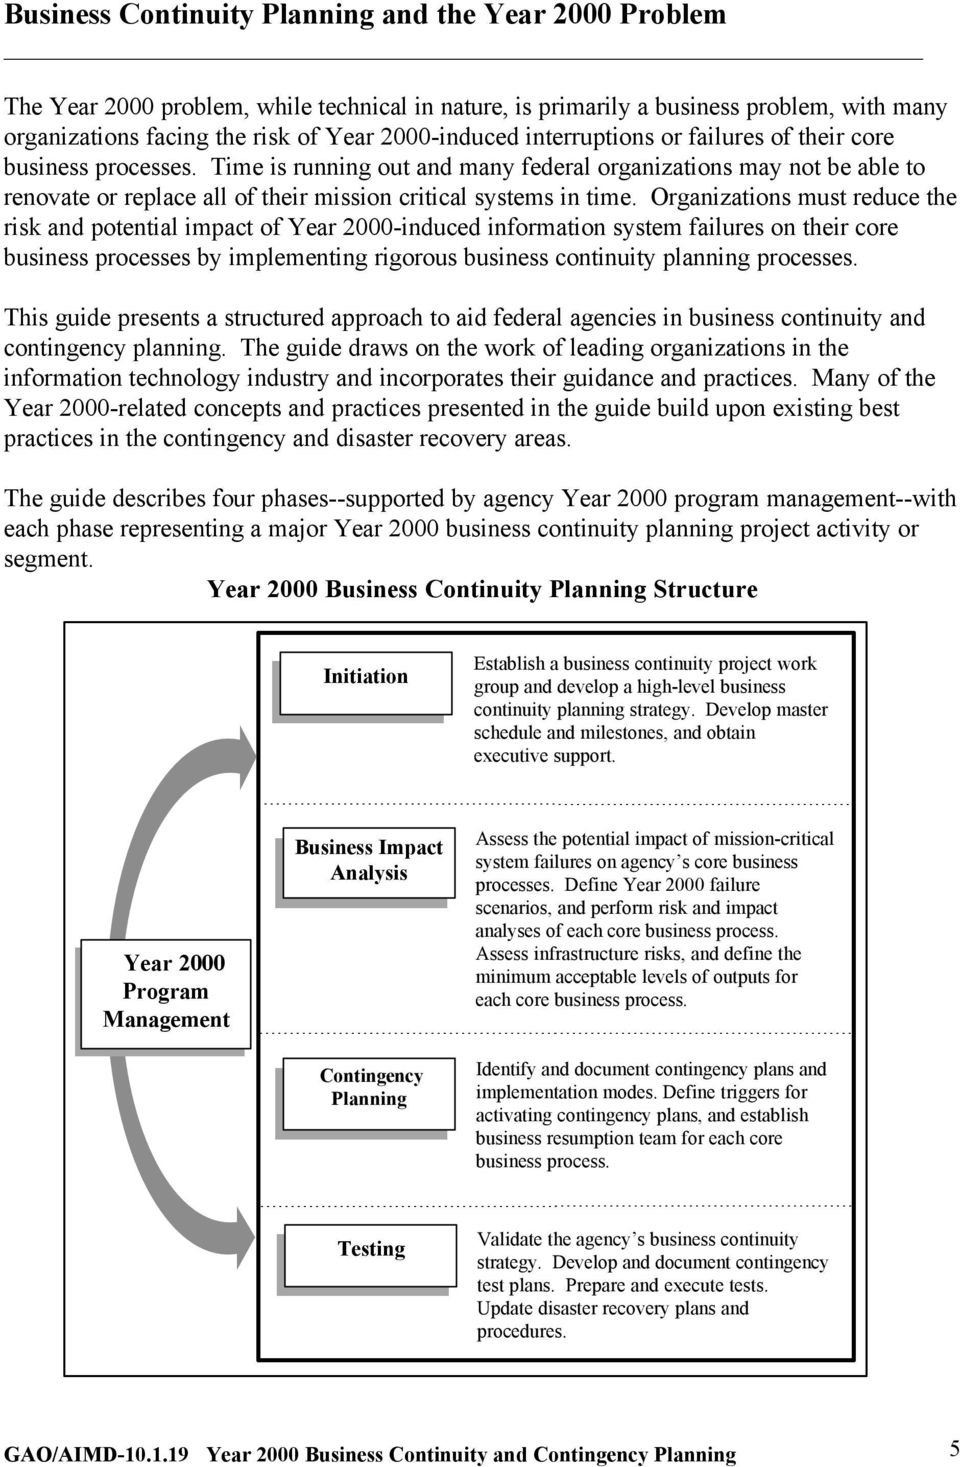 Organizations must reduce the risk and potential impact of Year 2000-induced information system failures on their core business processes by implementing rigorous business continuity planning